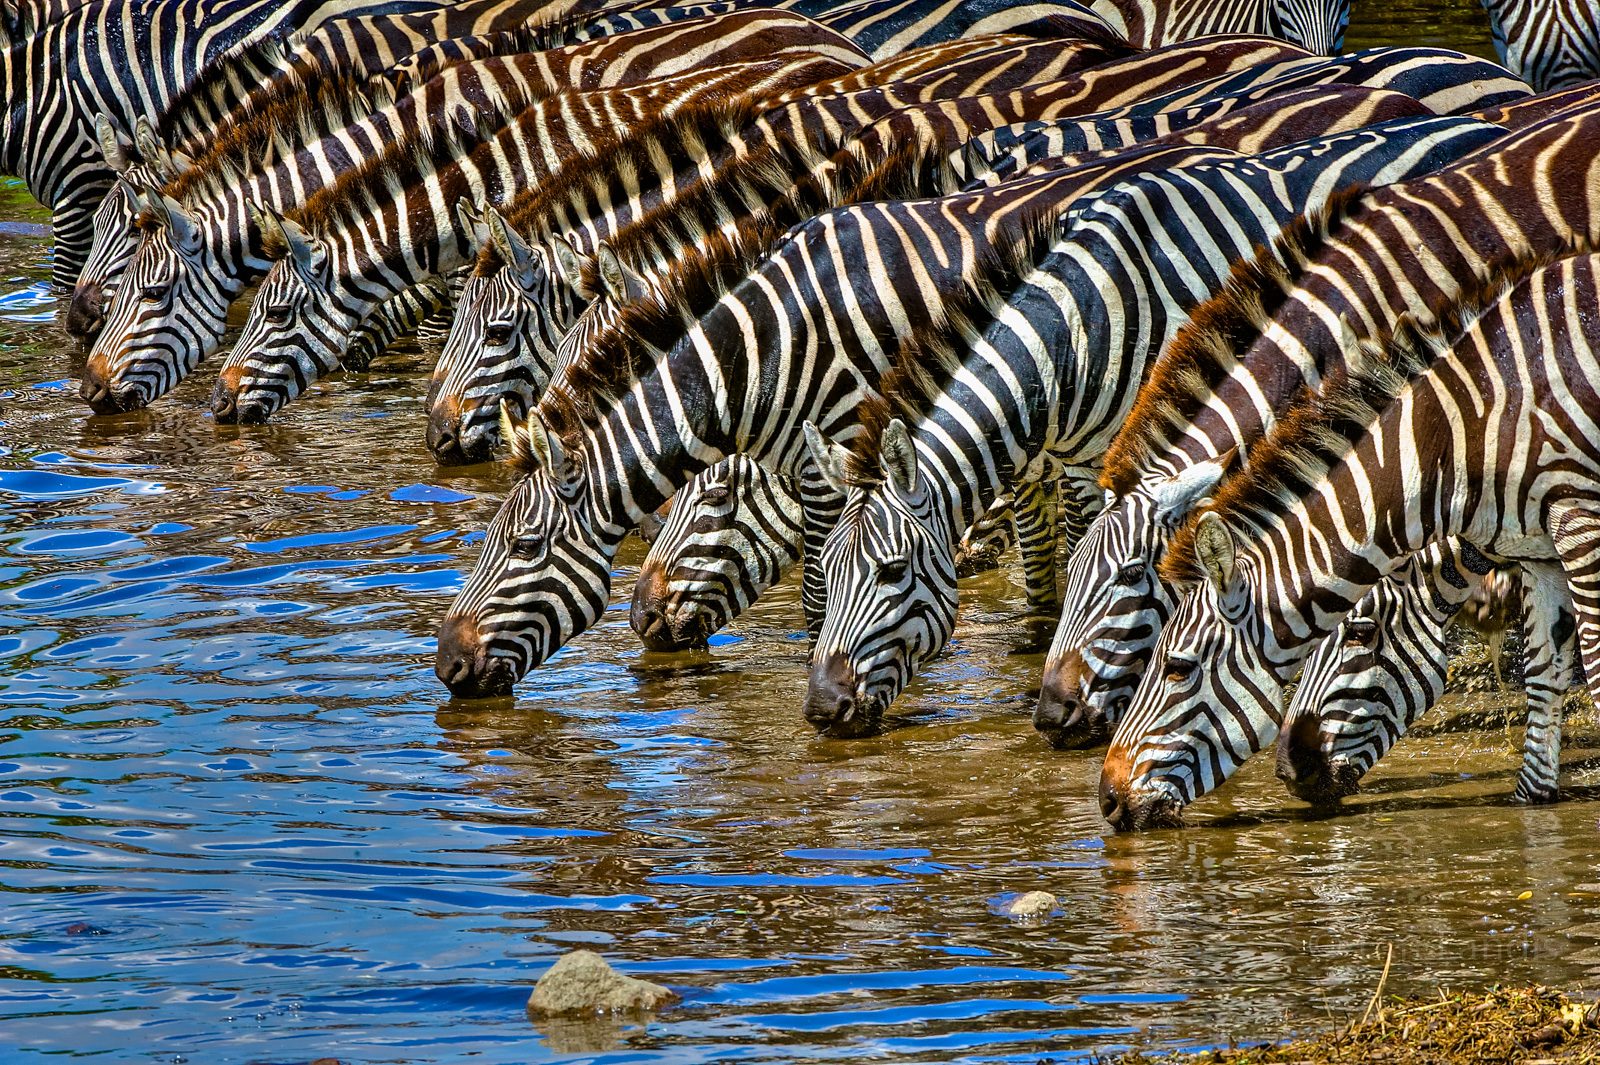 Zebra, Zebras at the river, drinking, , photo